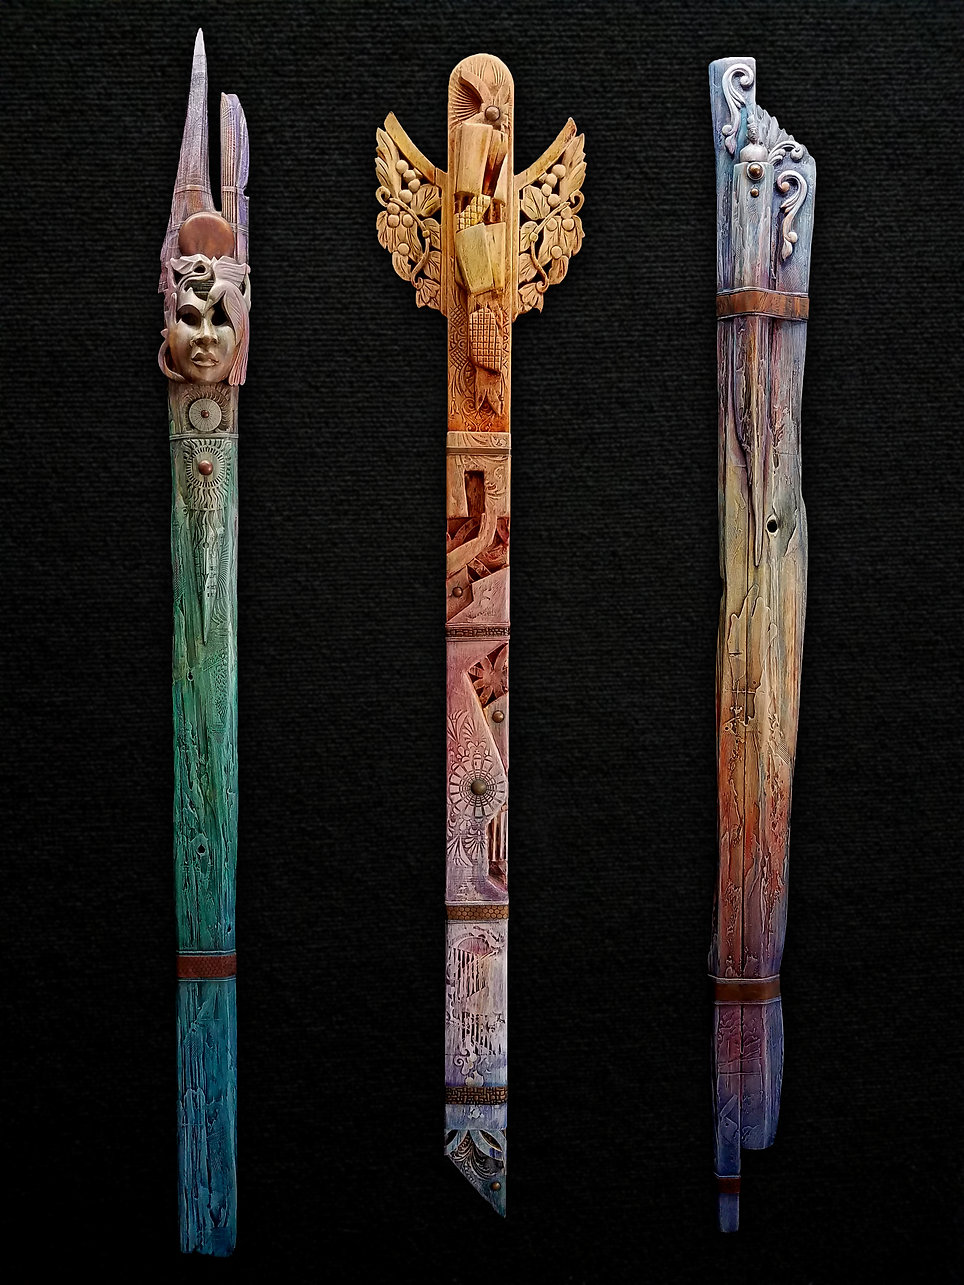 """Totem Grouping 1 Left: Morning Song Mixed Media ~ Acrylic, and Copper on Wood 75""""H x 5.5""""W x 3.5""""D  Center: Morning Flight  Mixed Media ~ Acrylic, and Copper on Wood 64""""H x 11.5""""W x 2.5""""D  Right: Ancestral Songs Mixed Media ~ Acrylic, and Copper on Wood 72""""H x 6""""w x 2""""D"""